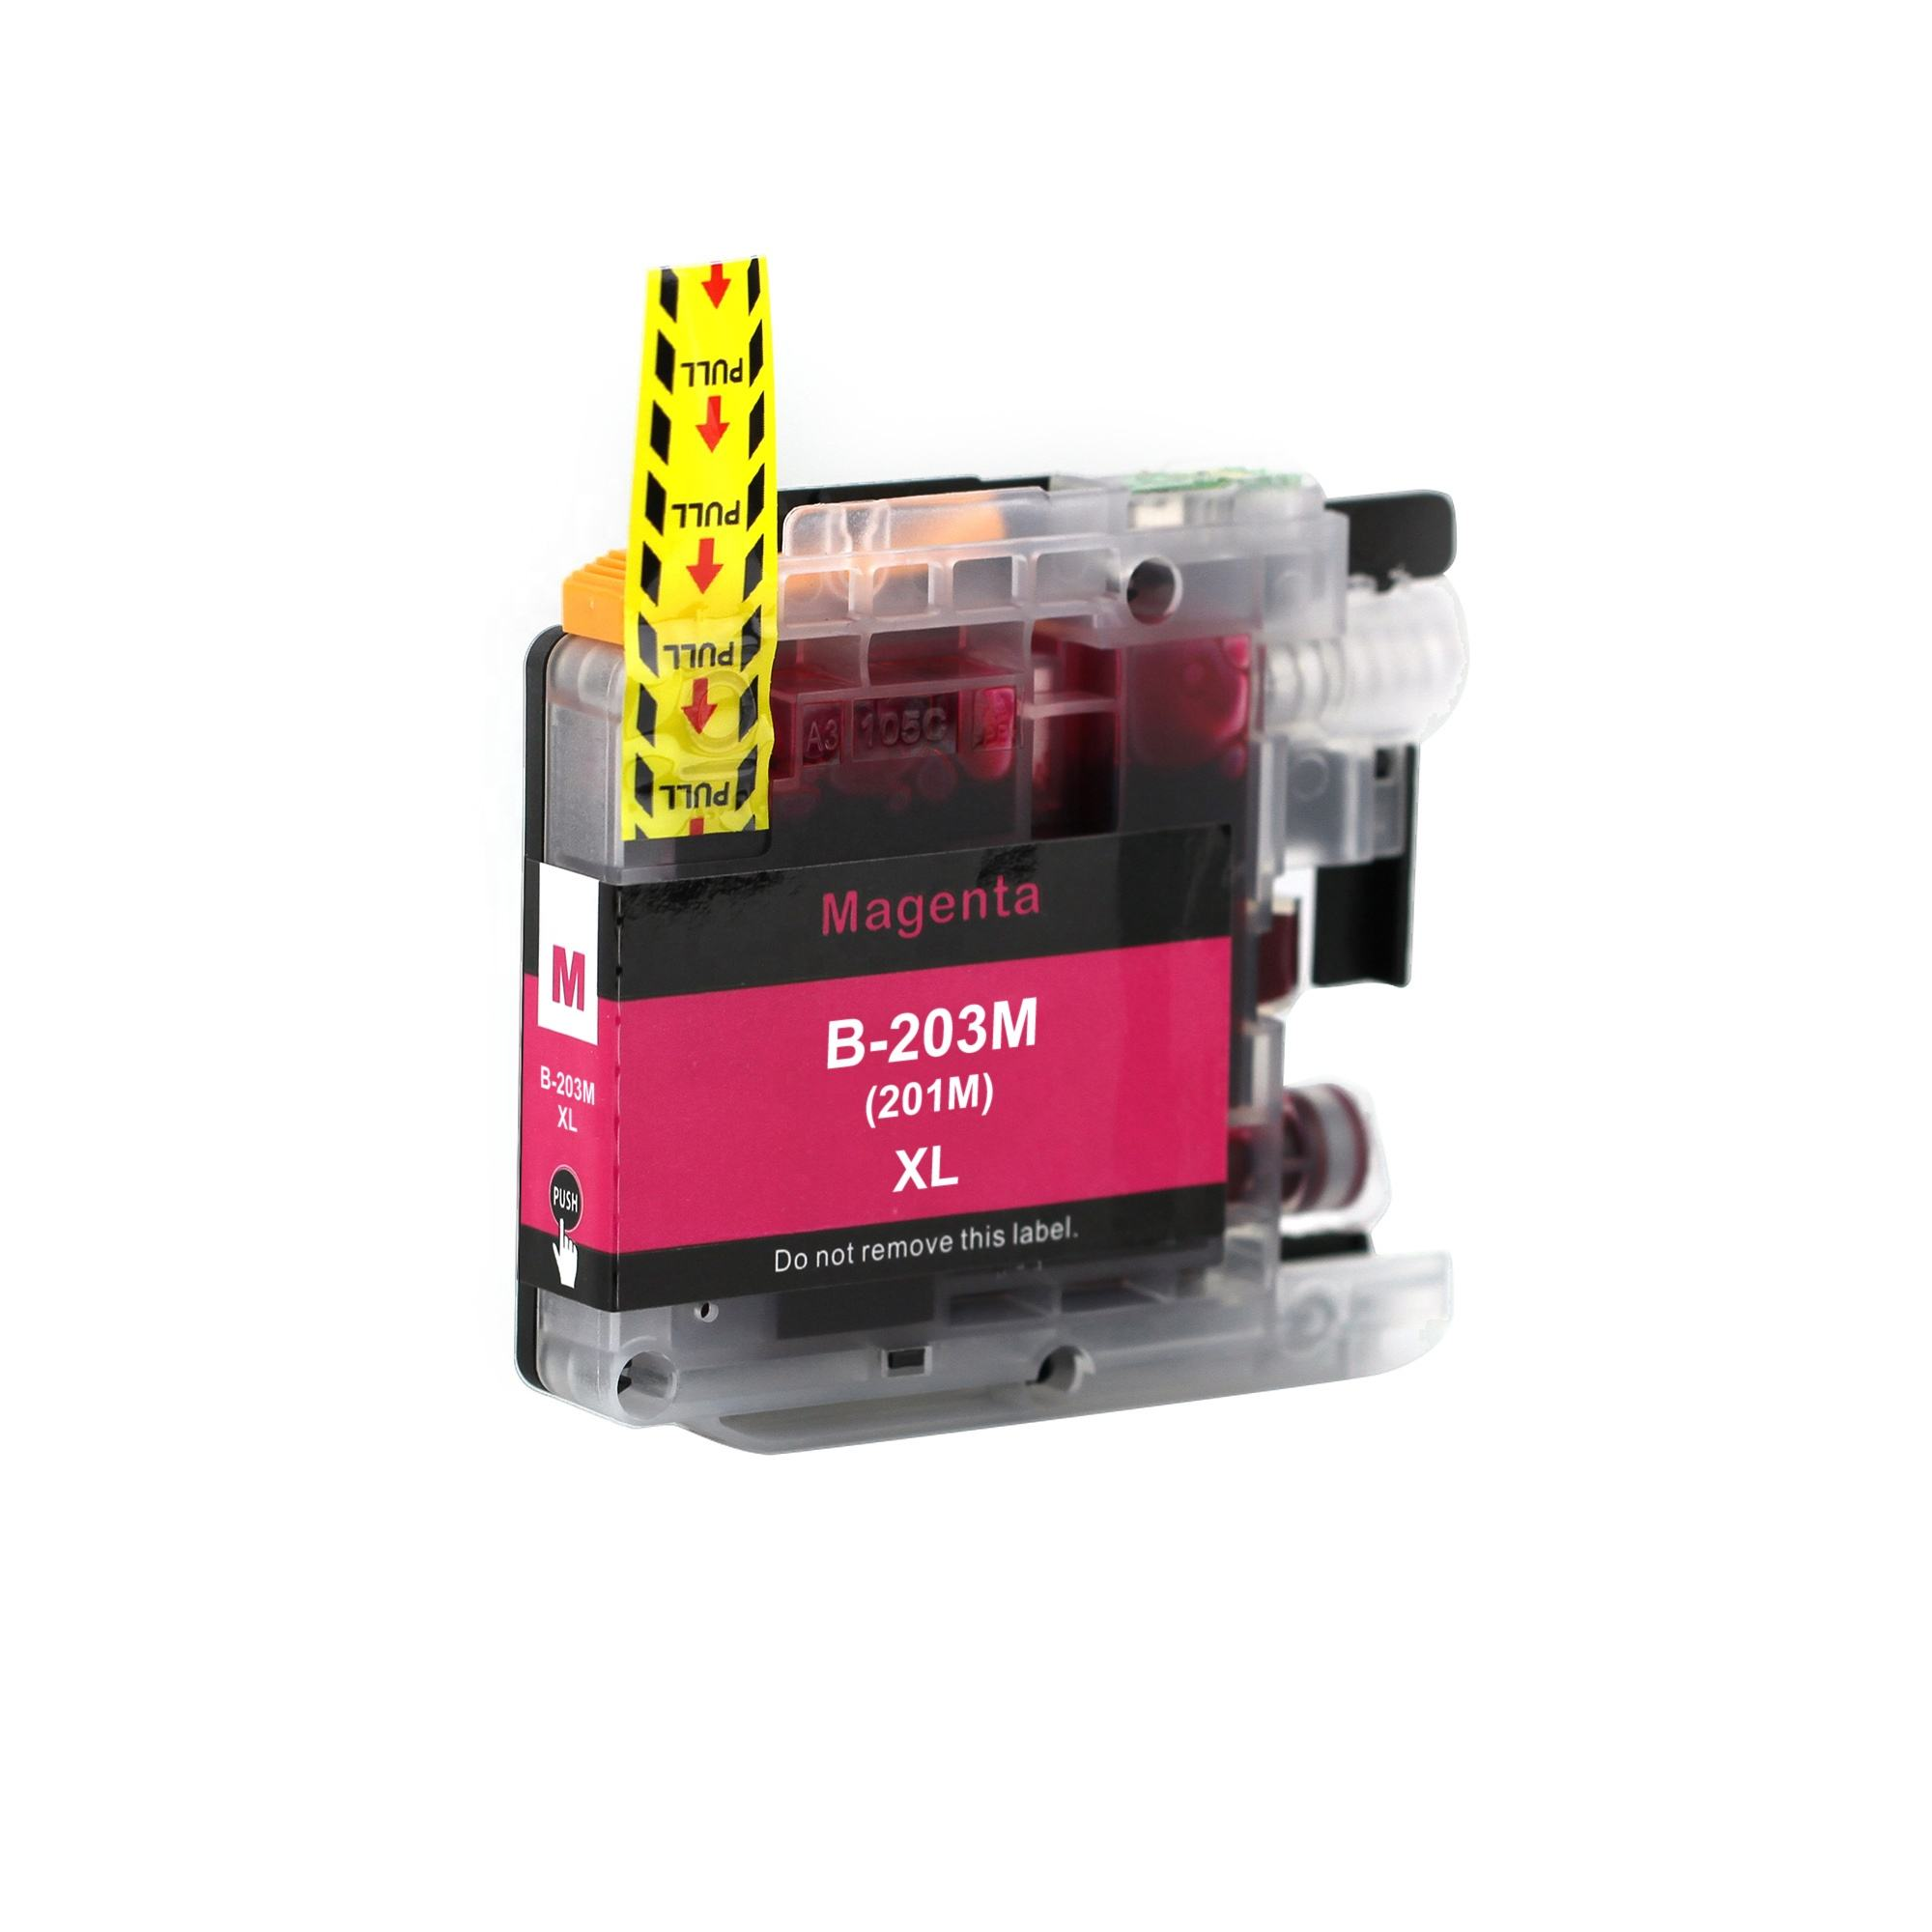 Replacement original black C M Y ink cartridge LC203XLBK for brother MFC-J4320DW/J4420DW/J4620DW /J5520DW/J5620DW/J5720DW/